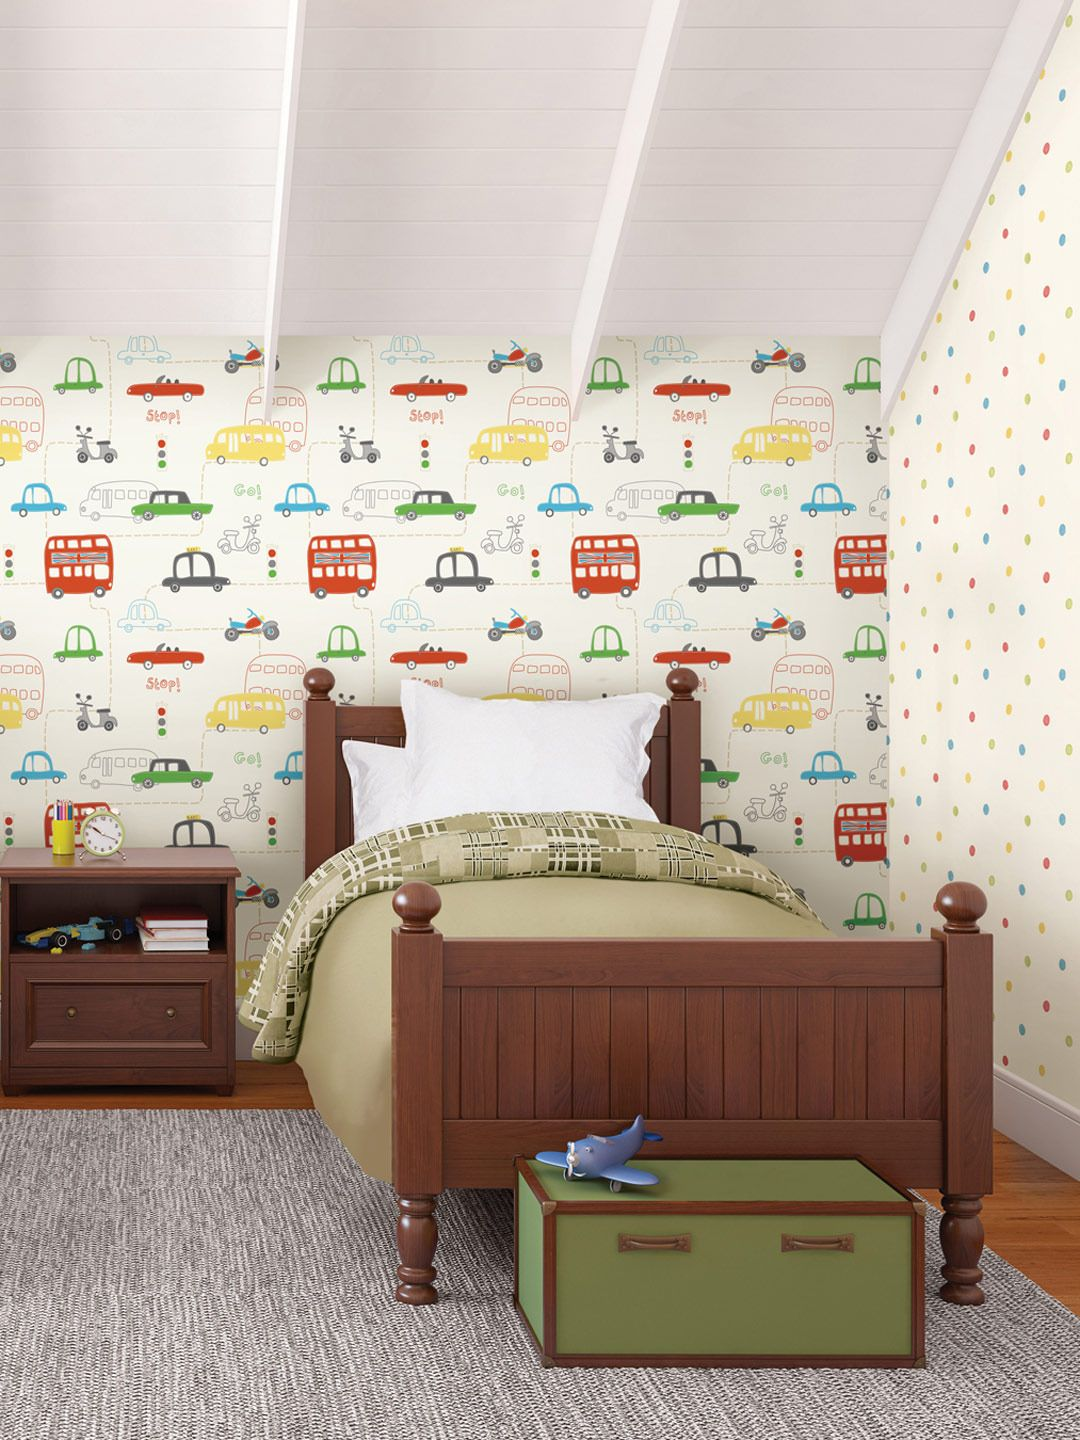 Kids Room Wallpaper Designs: @Kendall Finlayson Peterson One Wall Of A Boys Room Or The